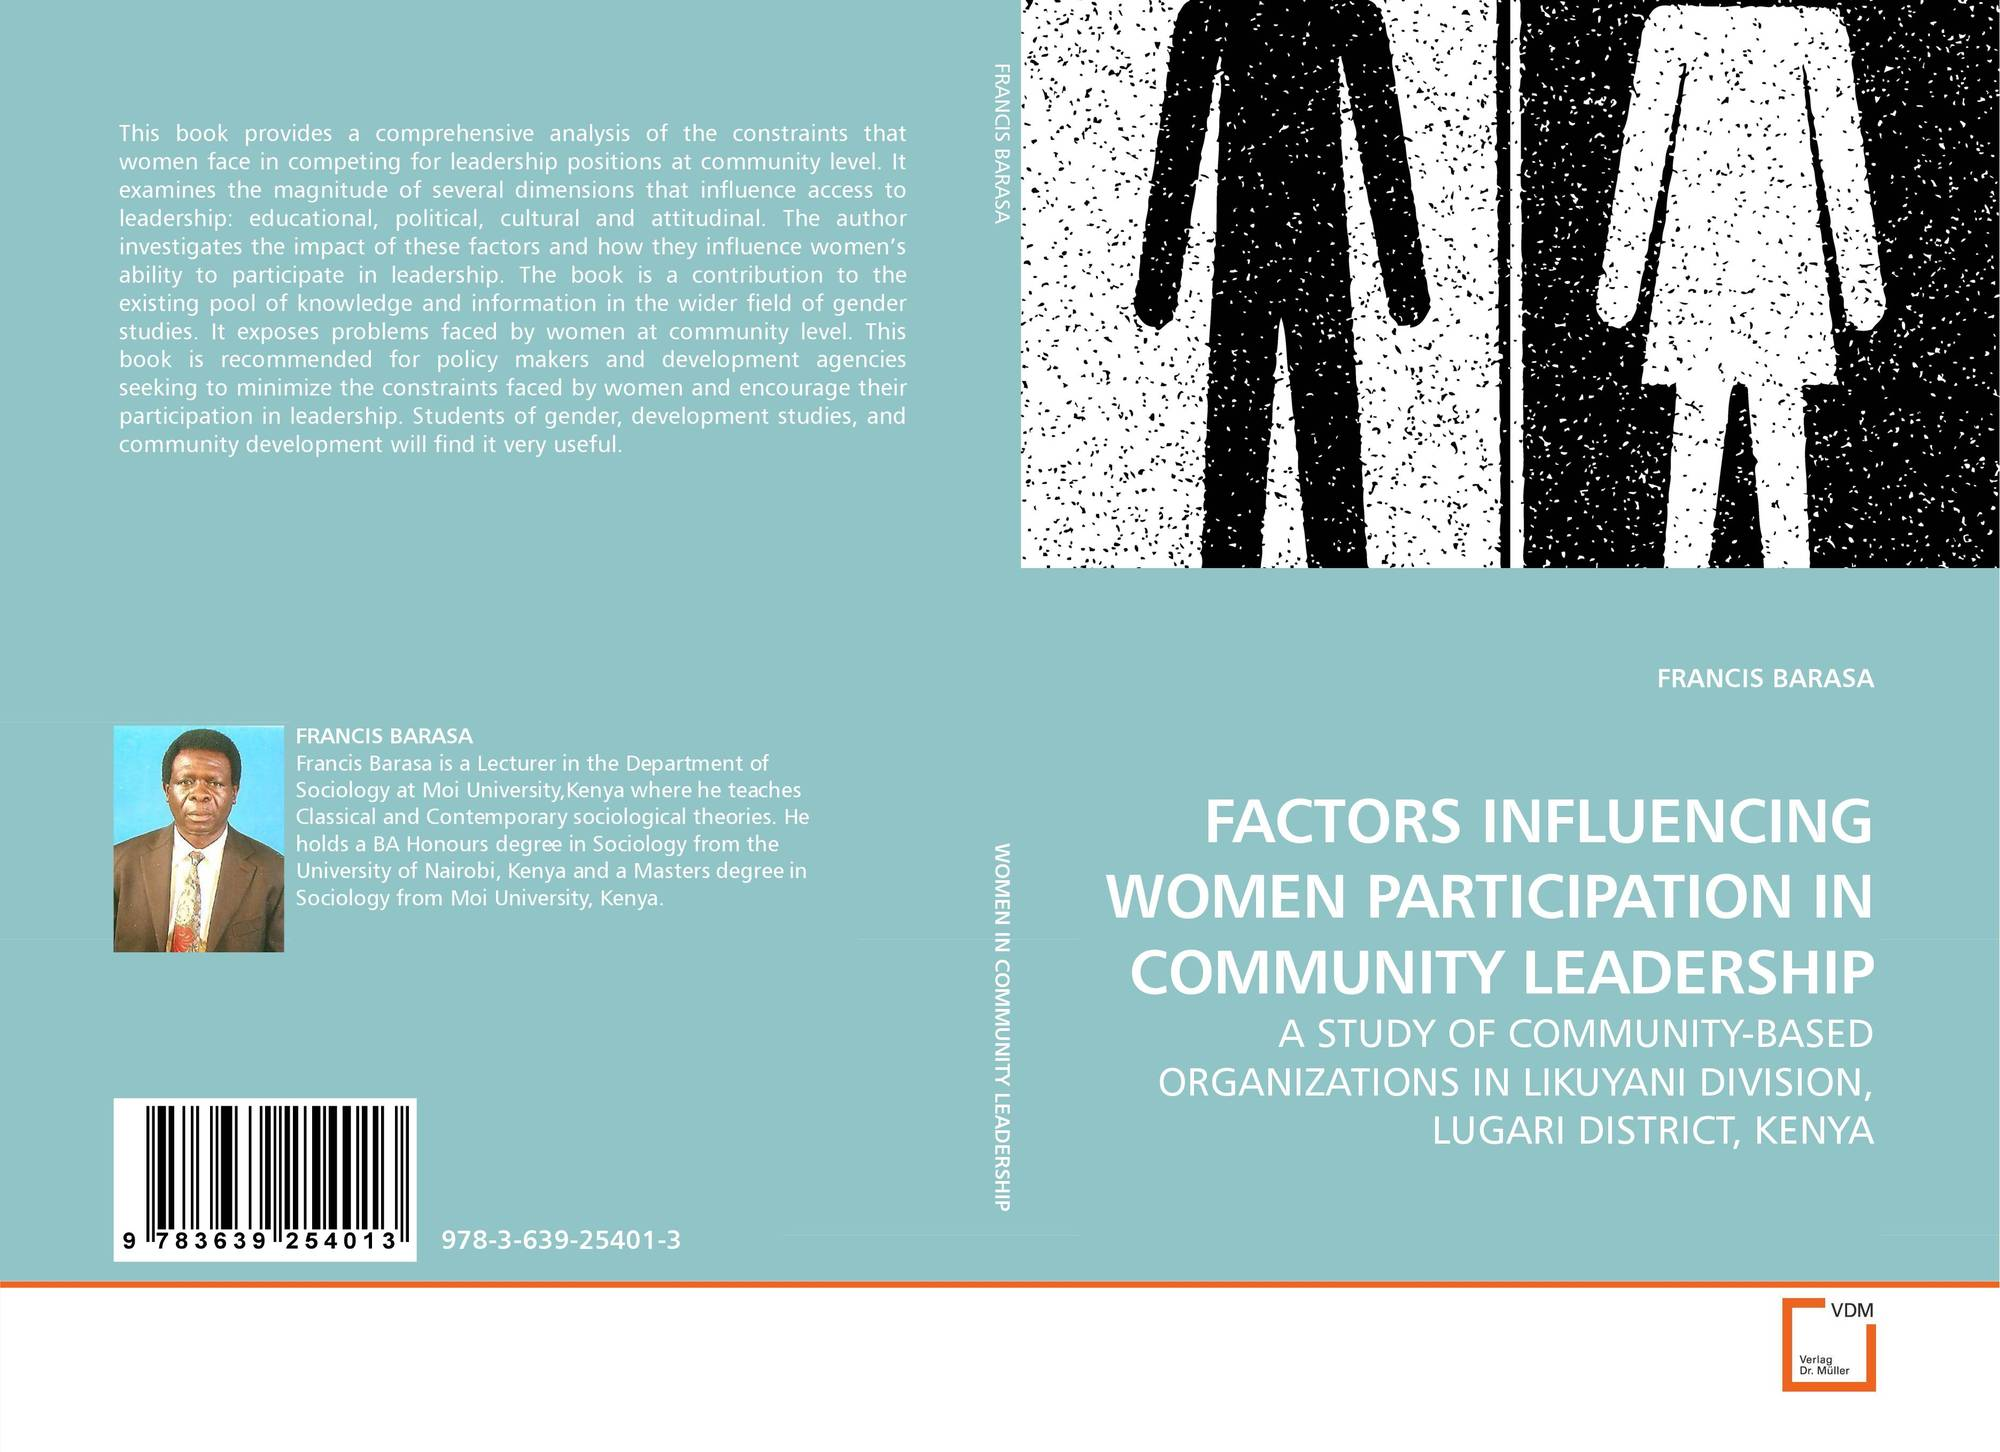 influence of socio cultural factors on gender Citation: obiorah cc, atanda at(2013) influence of socio-cultural factors on homicide: the nigeria case study j forensic res 4: 186 doi:104172/2157-71451000186 page 2 of 4.